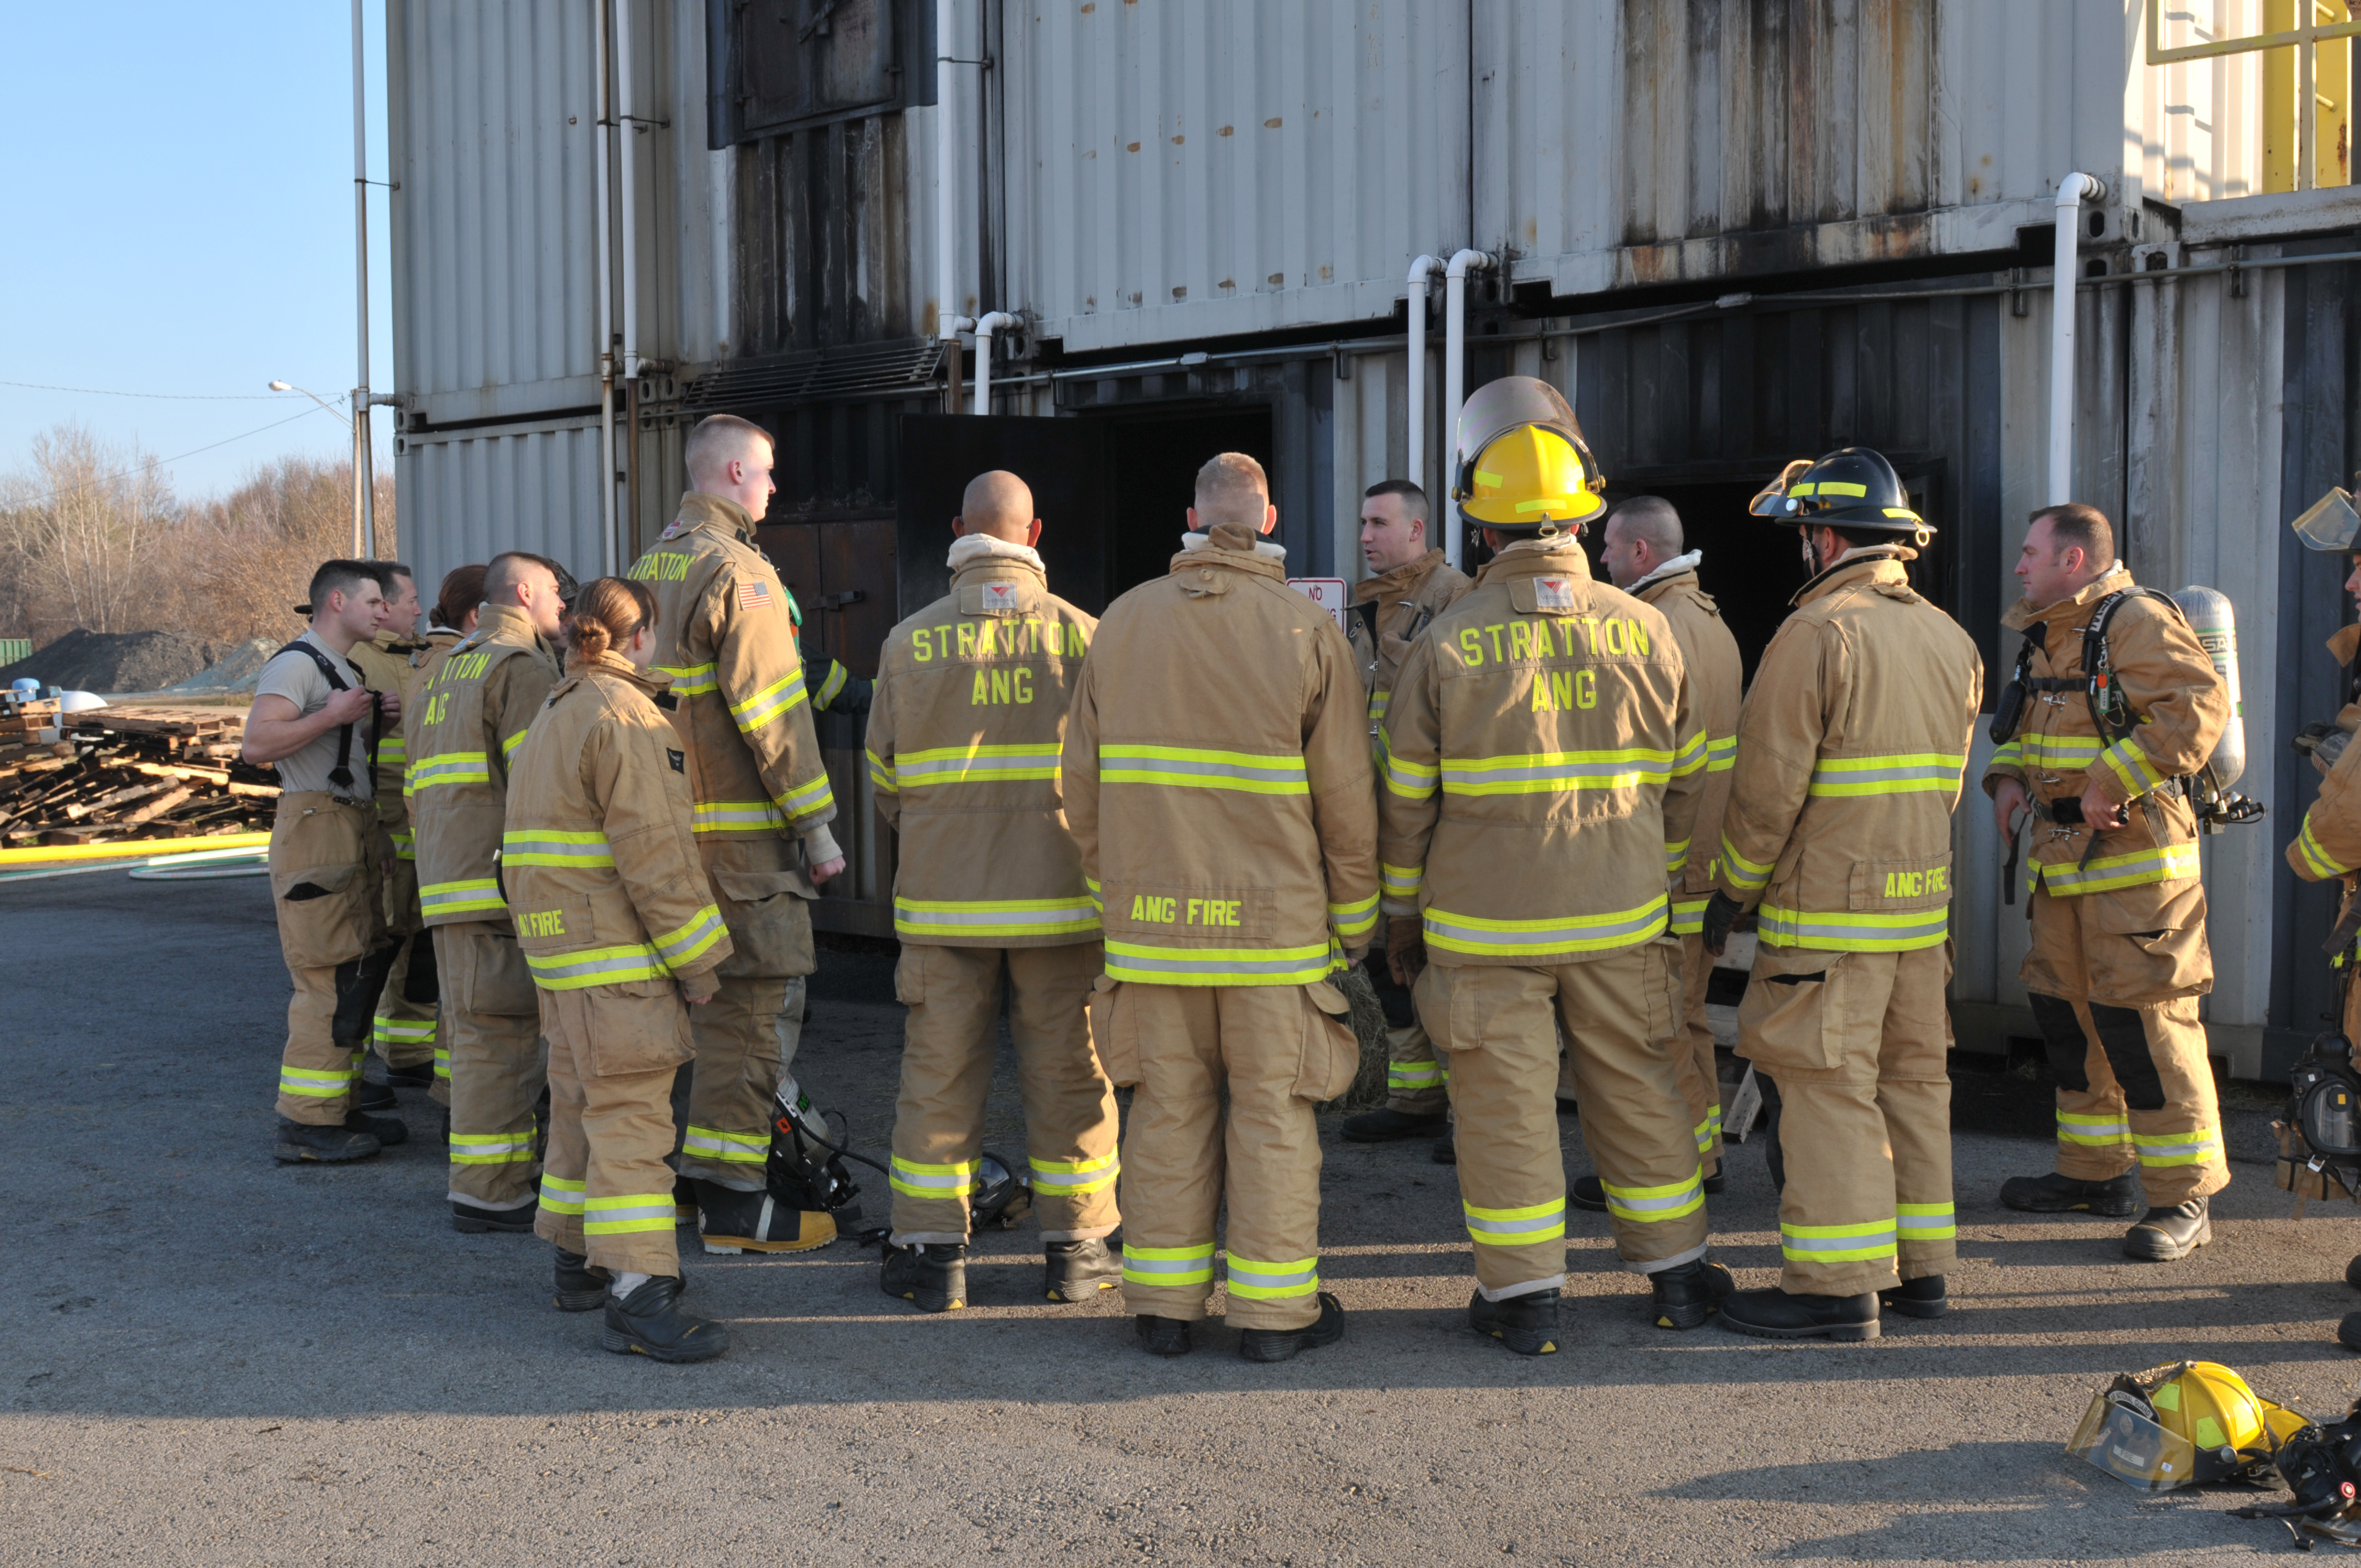 109th, community firefighters complete live fire training